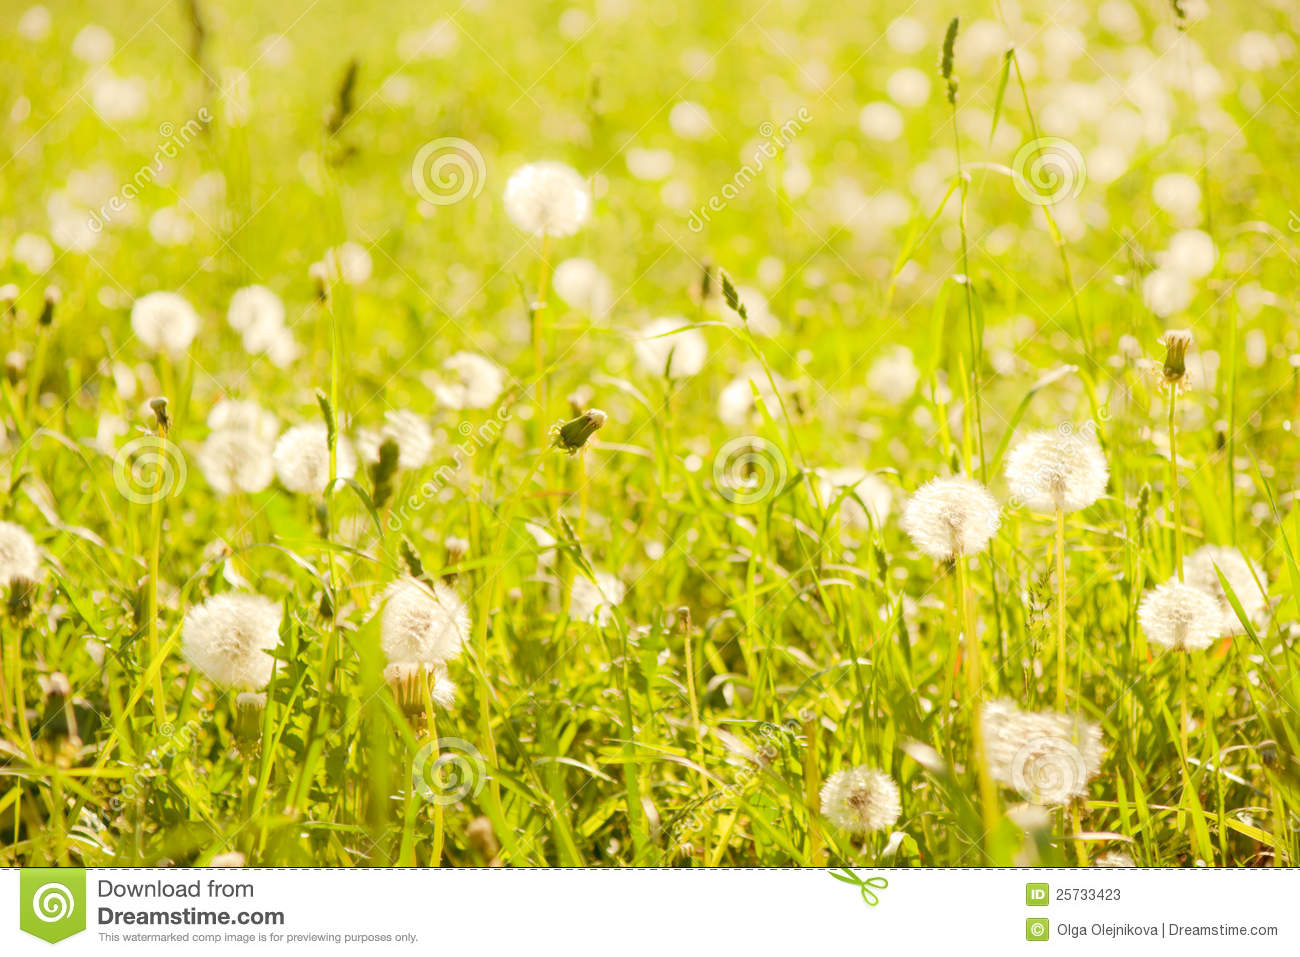 Dandelions in summer grass